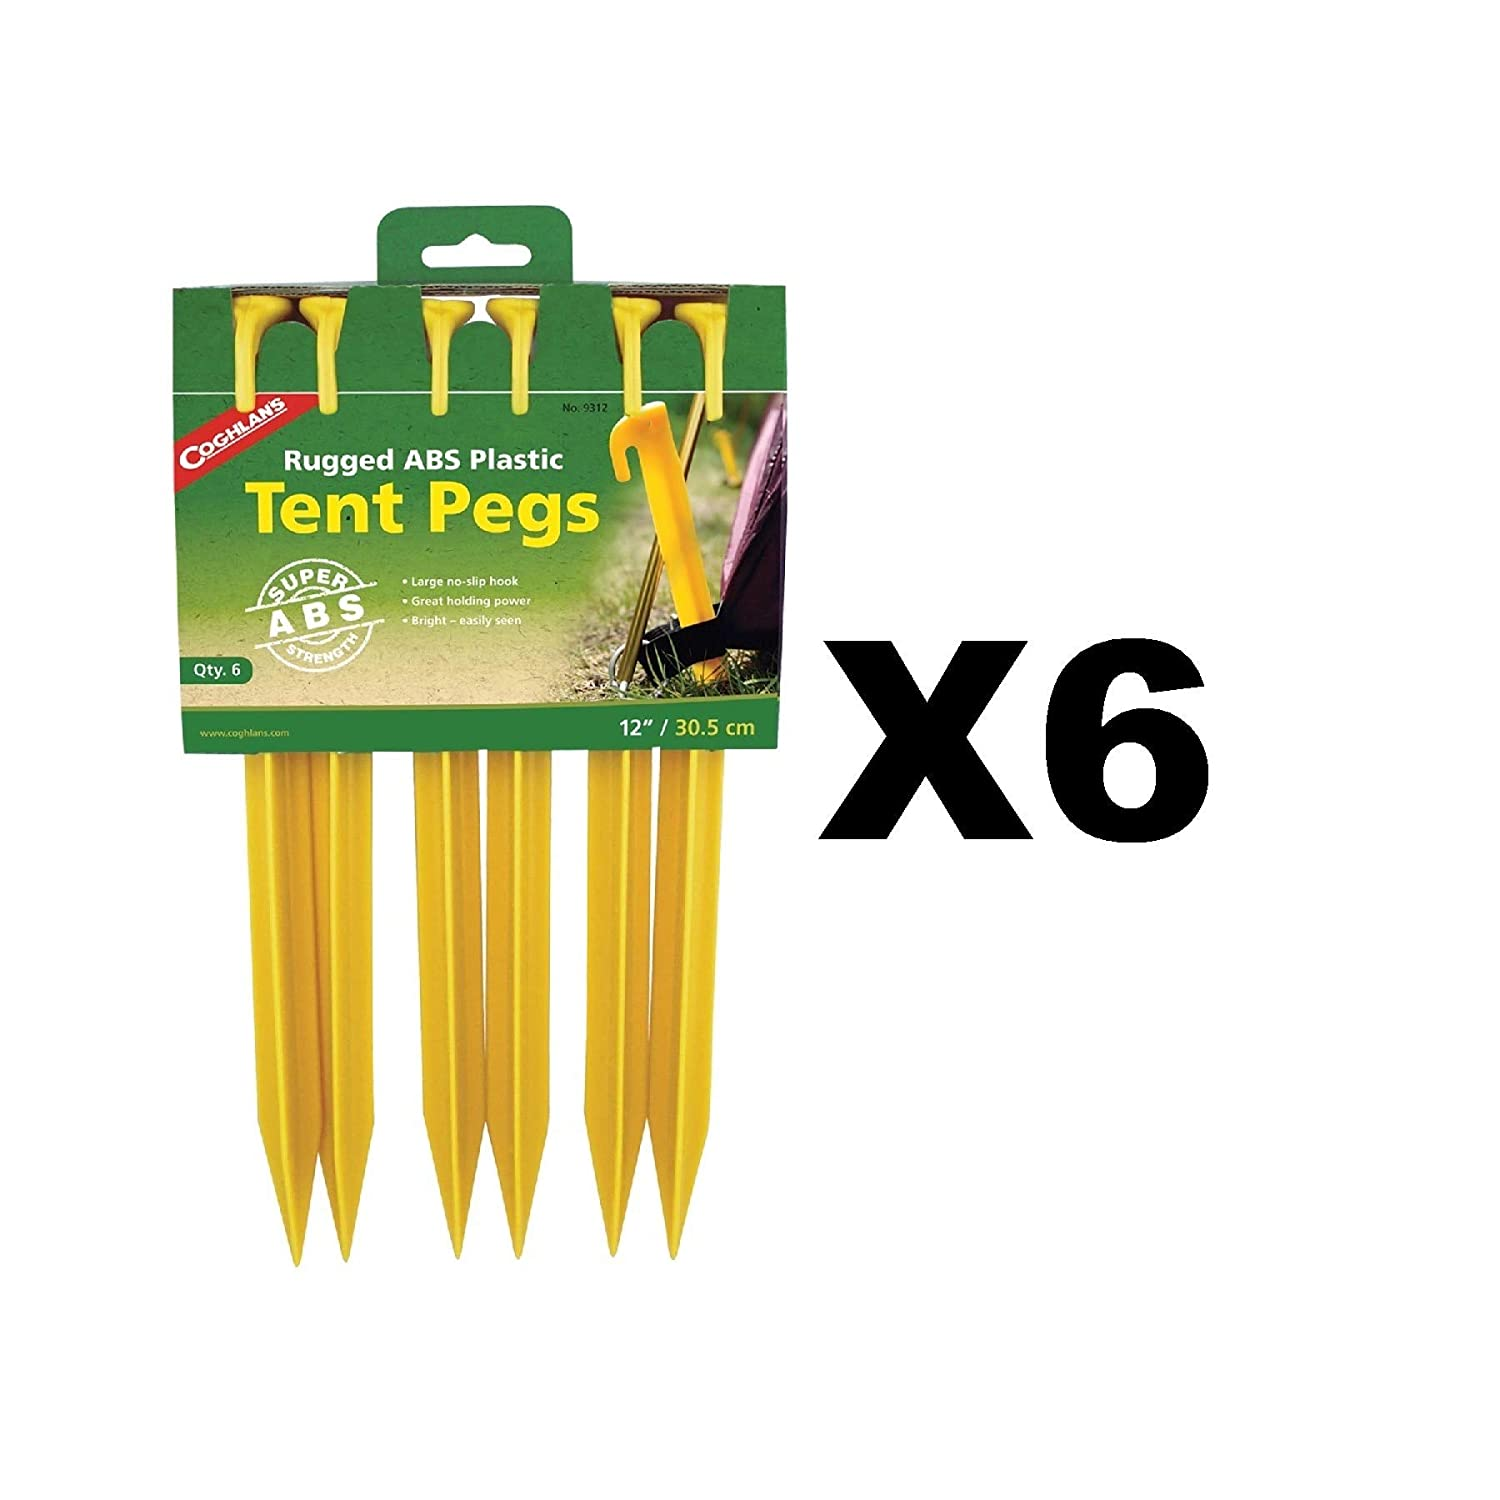 Tent Pegs Abs Bright 12in 6 Pk by Coghlans Coghlan'S Ltd